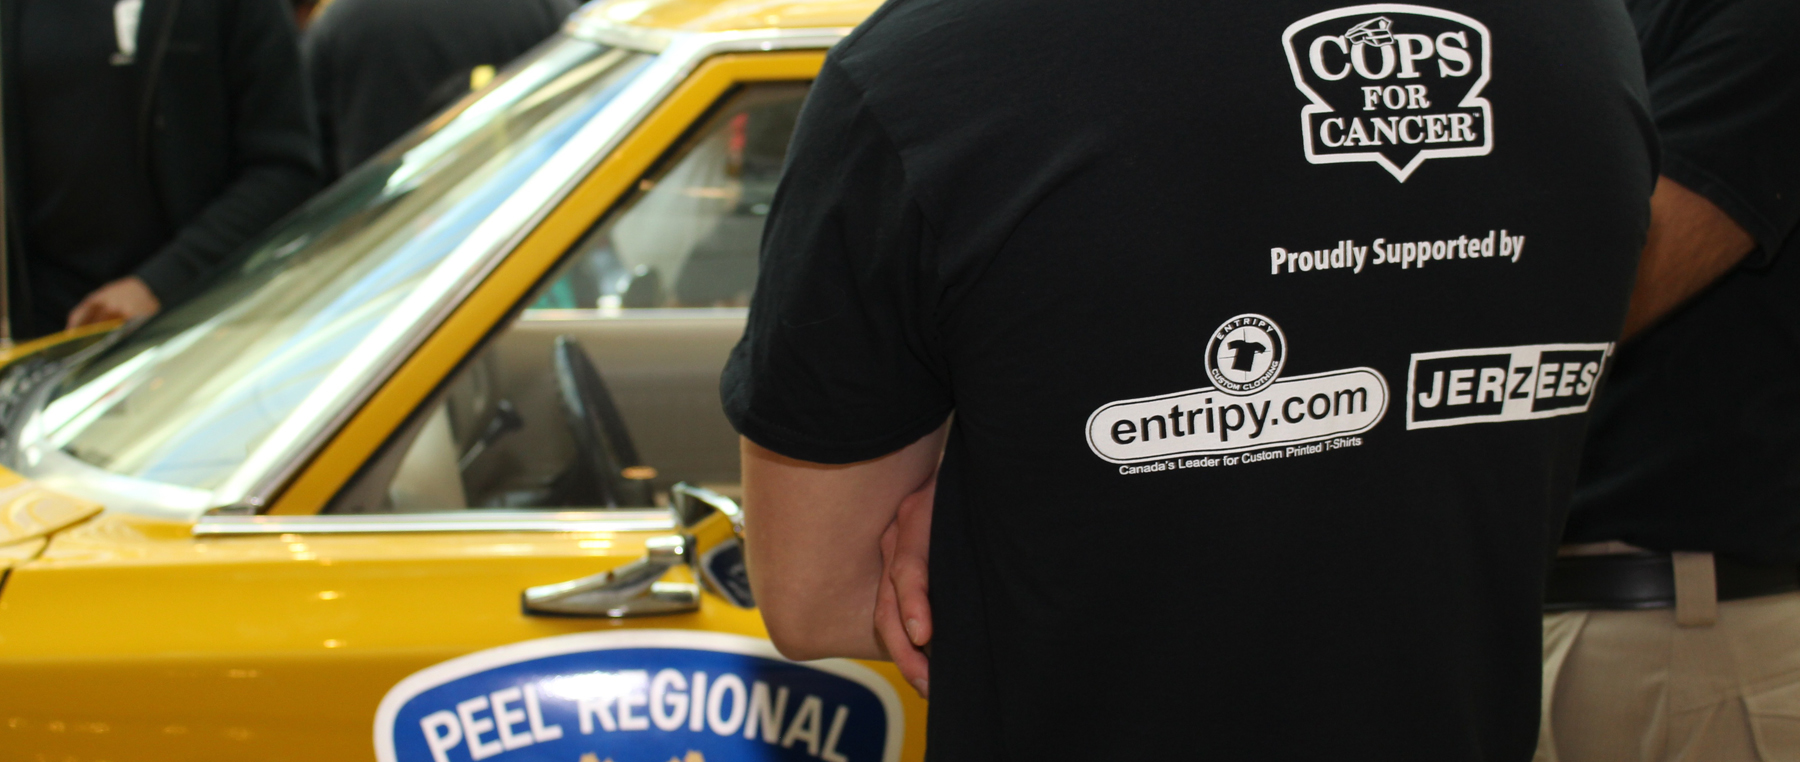 Entripy working with not-for-profit organization printing custom t-shirts to raise funds for cancer research.